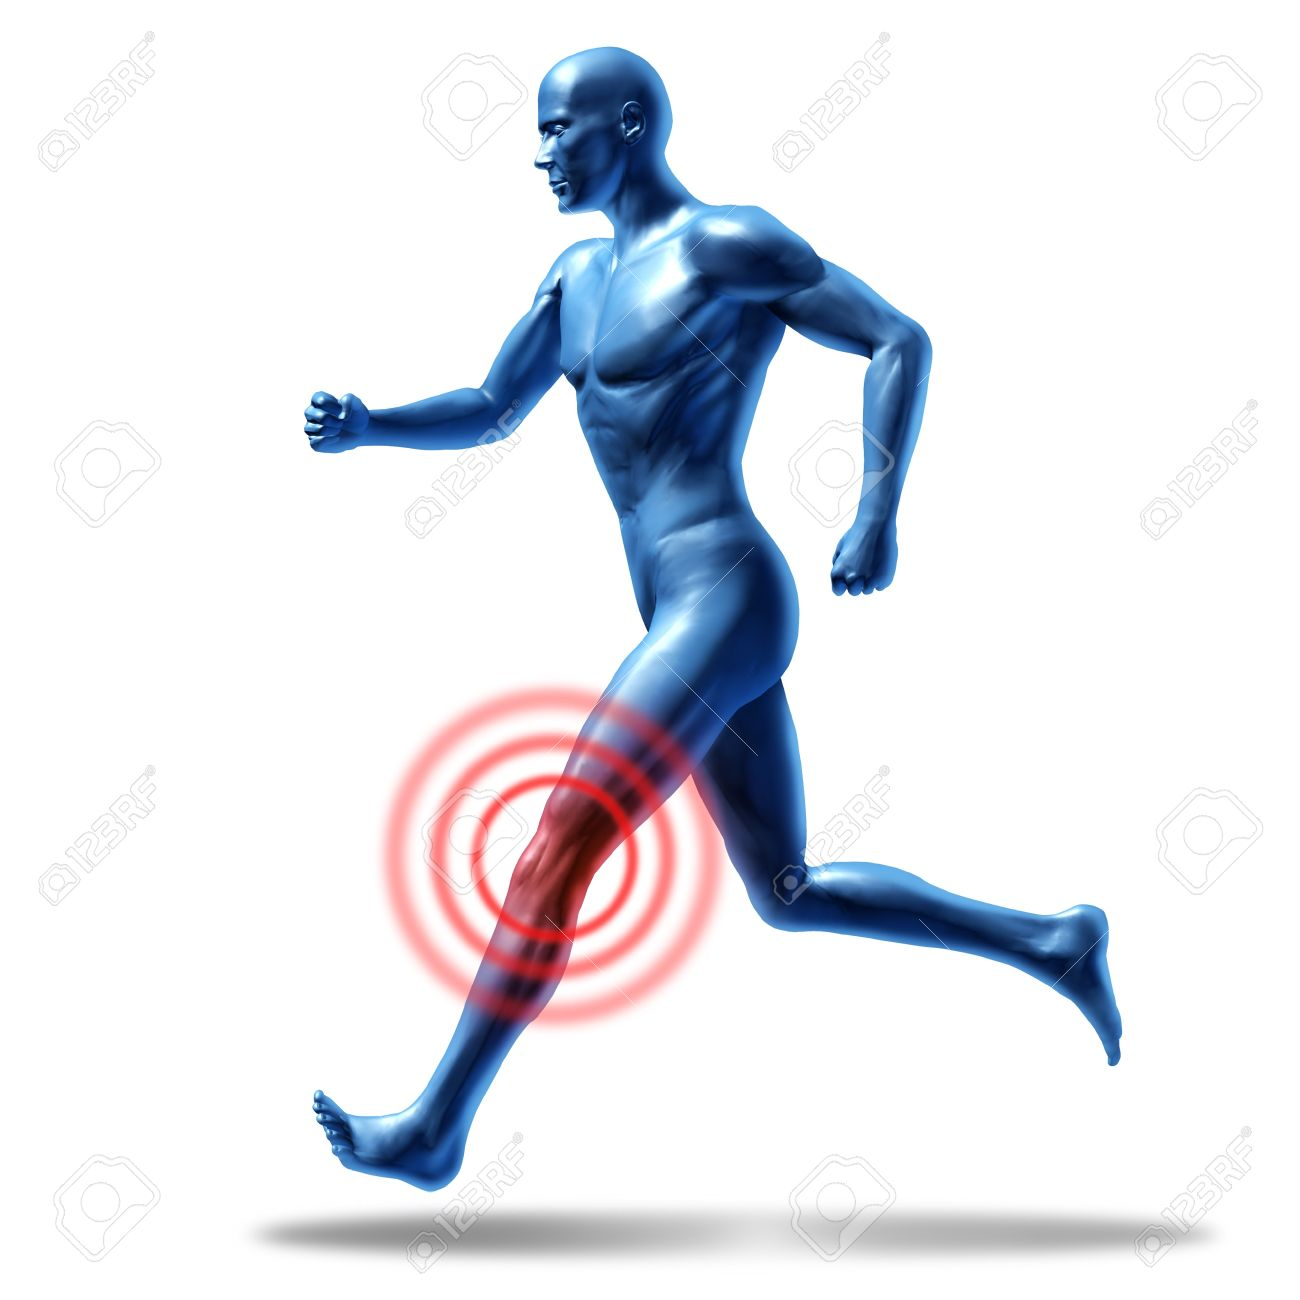 Running man with knee pain and injury representing a medical symbol of health Stock Photo - 11530353